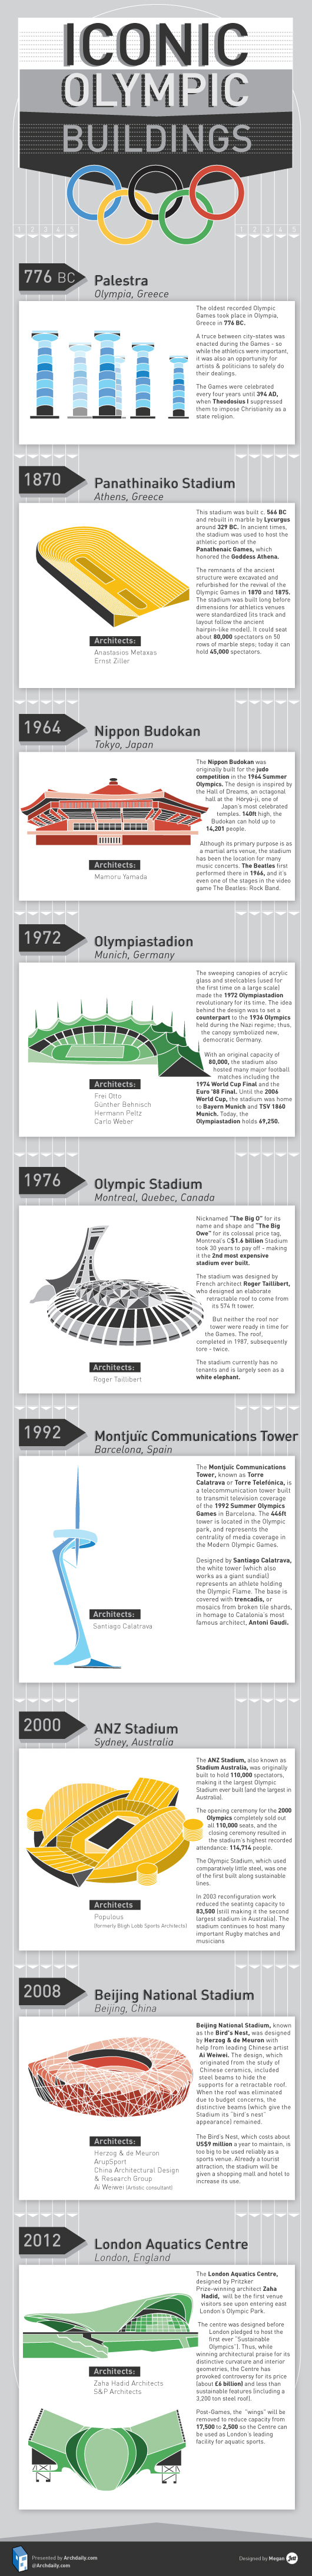 Famous Olympic Buildings-Buildings